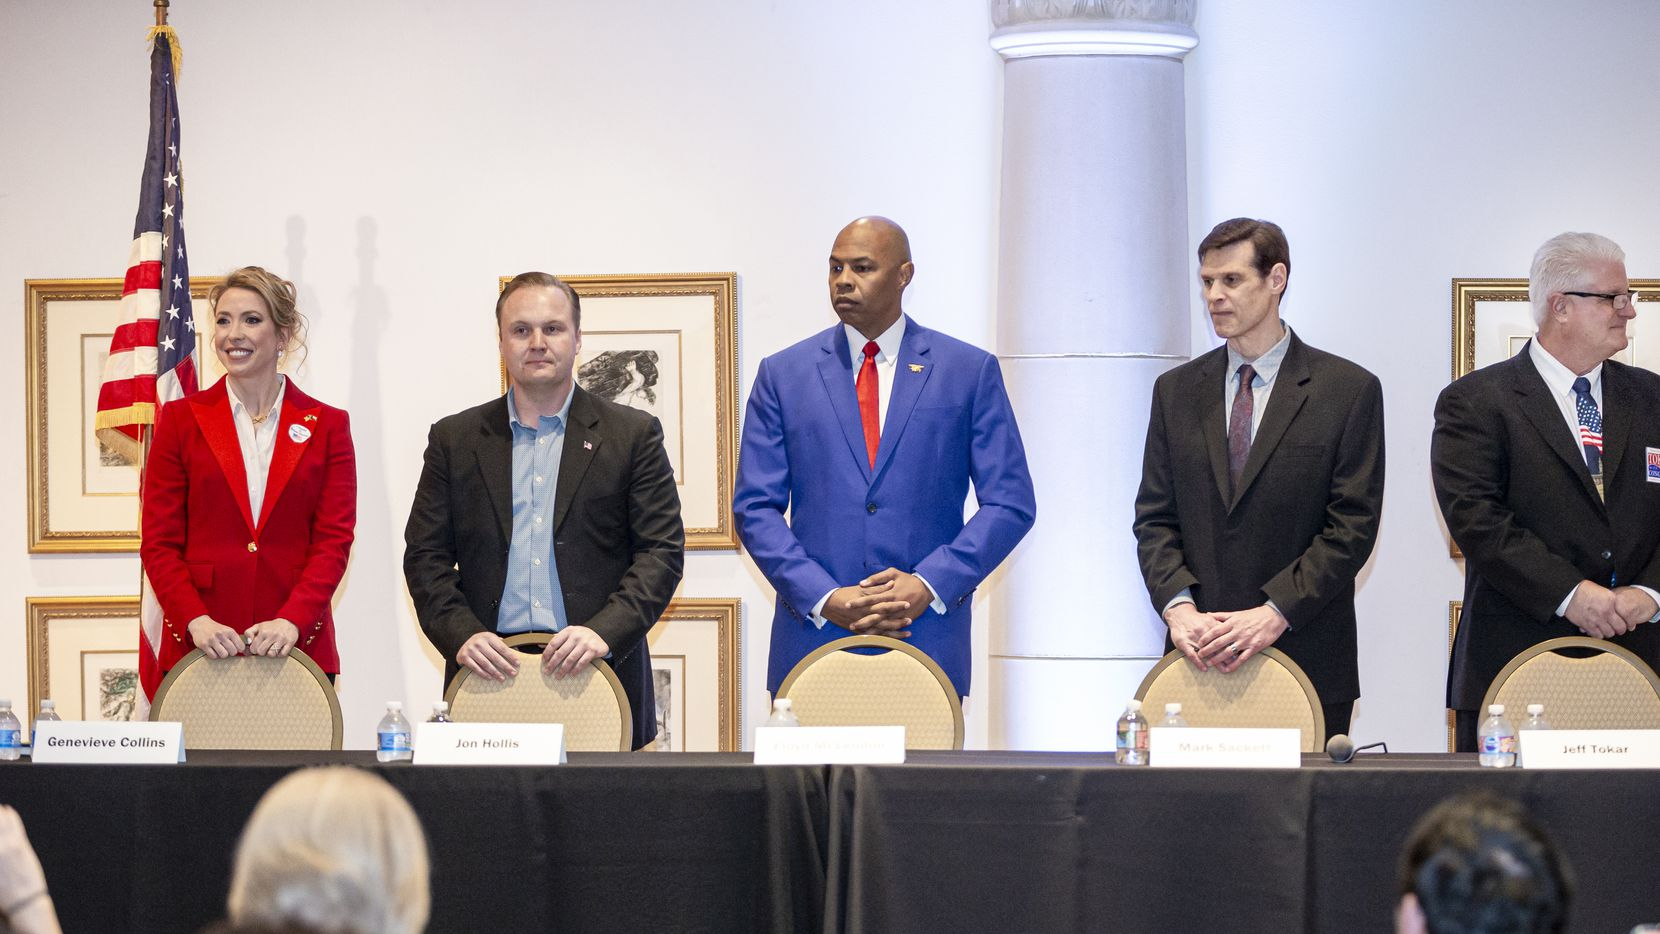 (From Left) Republican Candidates for District 32 Genevieve Collins, Jon Hollis, Floyd McLendon, Mark Sackett and Jeff Tokar are introduced during the Republican Candidate Forum at the Museum of Biblical Art, Tuesday, February 18, 2020. (Brandon Wade/Special Contributor)